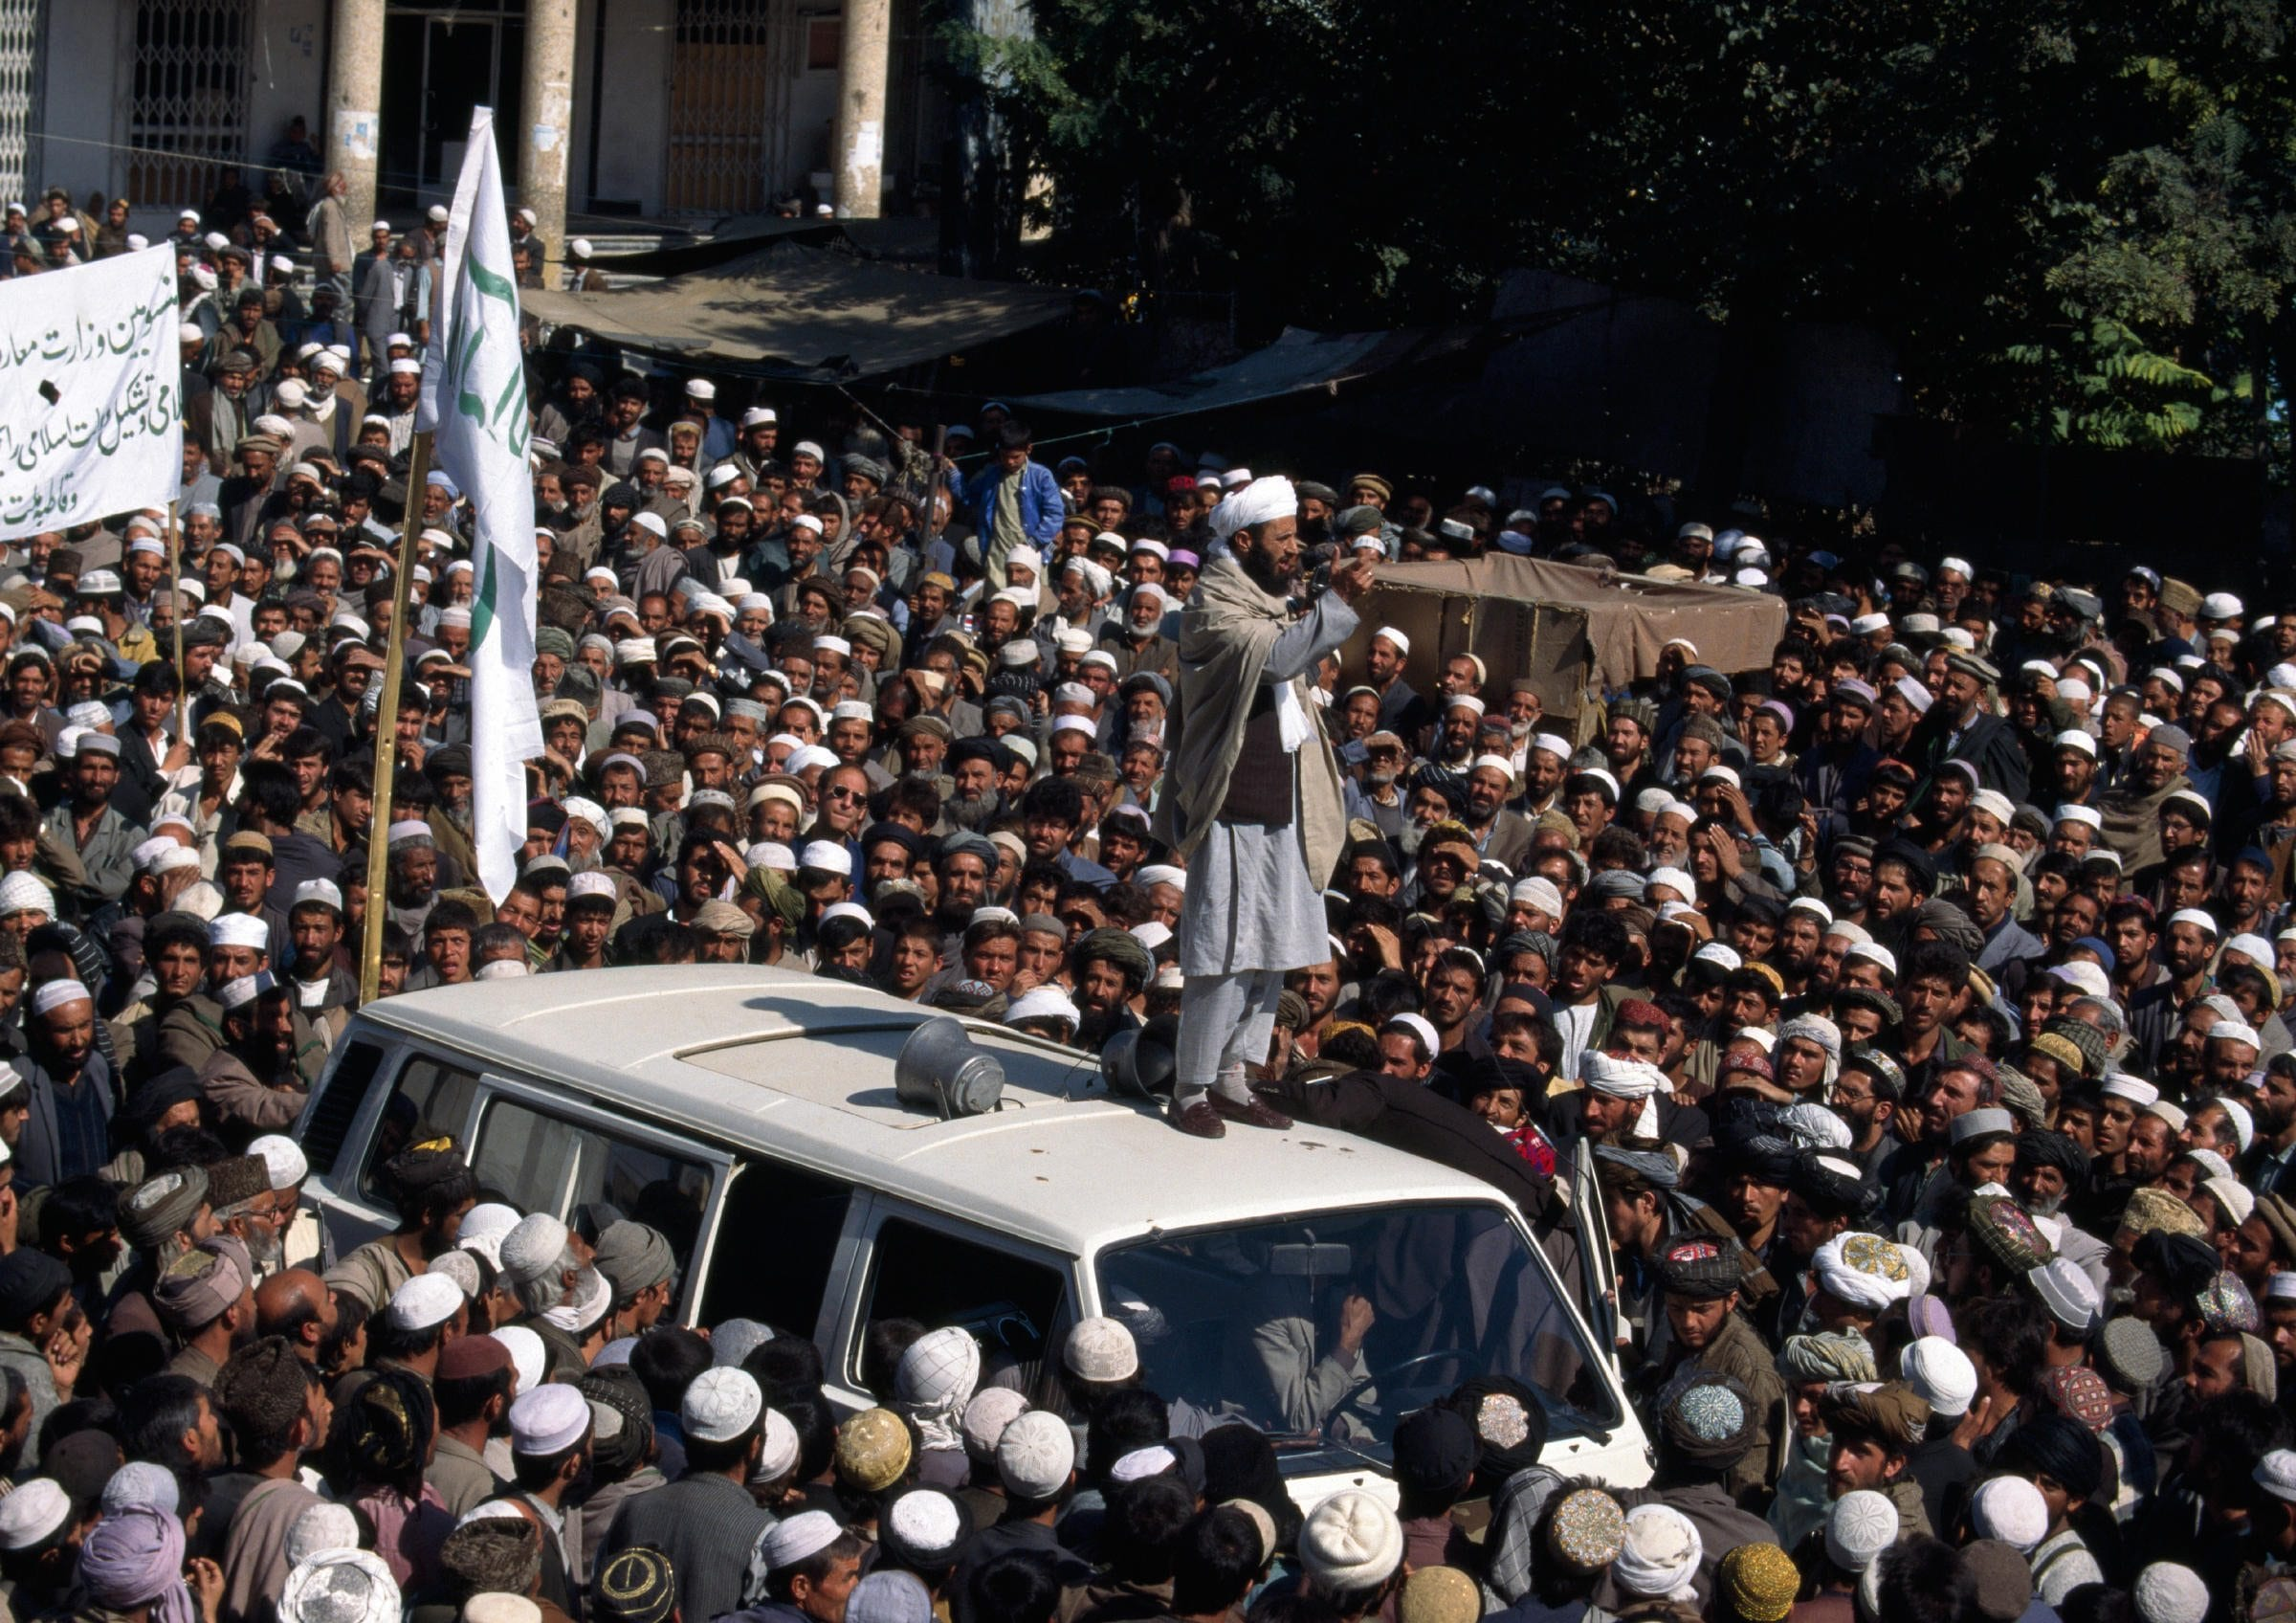 A Taliban mullah speaks to a crowd in central Kabul in early Oct. 1996  (ROBERT NICKELSBERG)